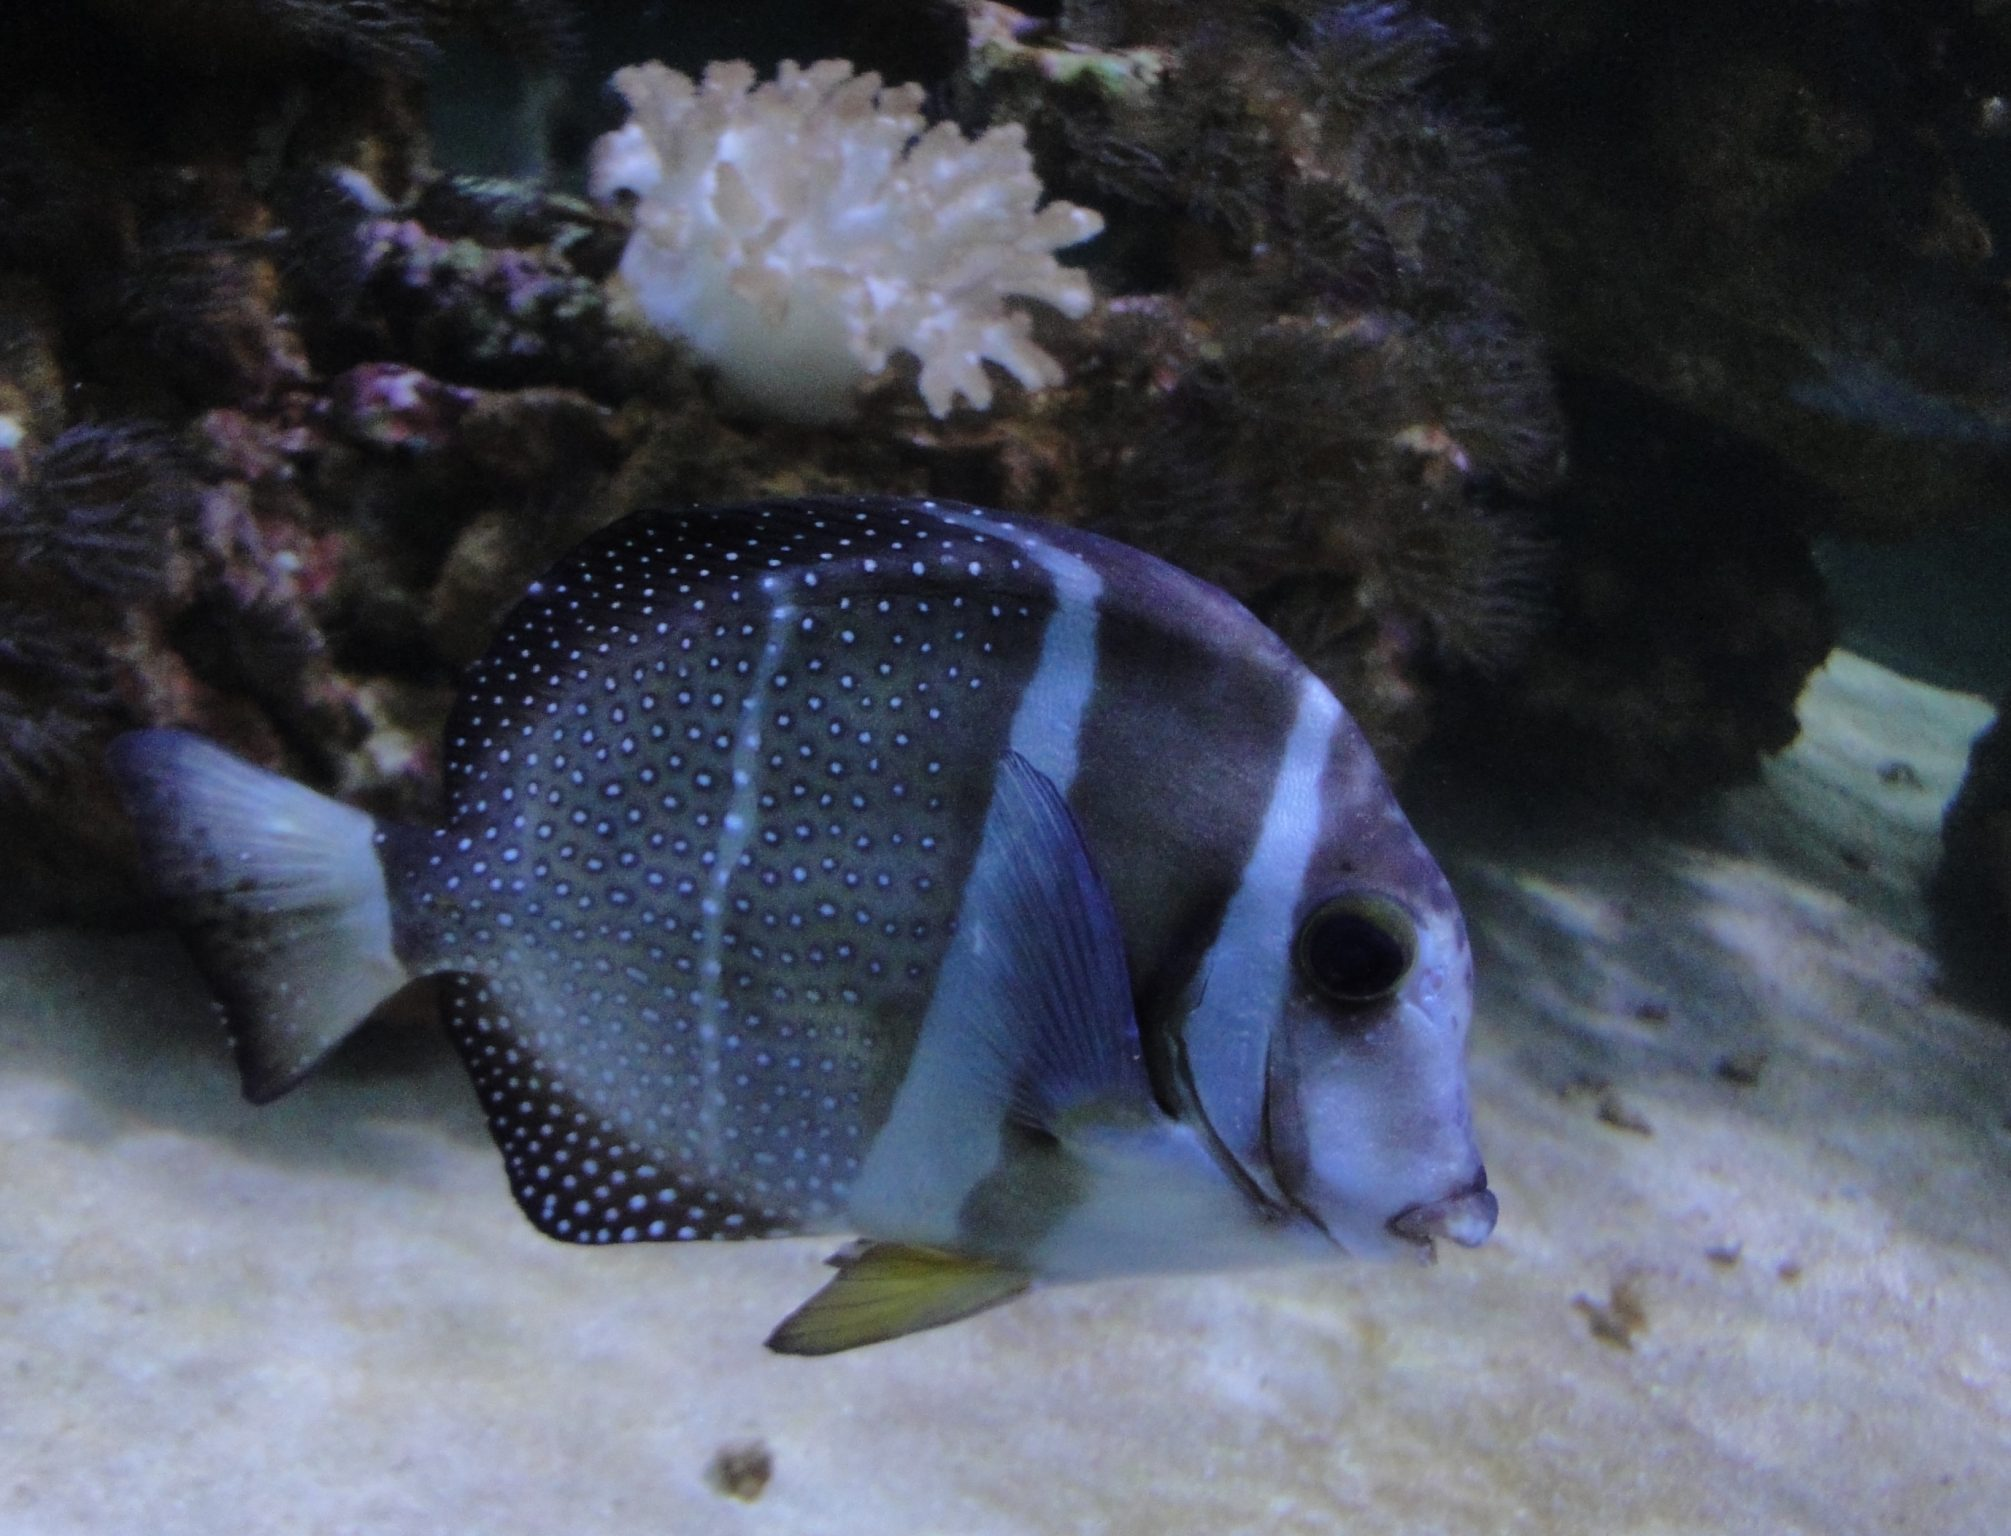 Whitespotted Surgeonfish, Mustard Surgeonfish, Mustard Tang, Spotband Surgeonfish, Spotted Surgeonfish, Spotted Tang